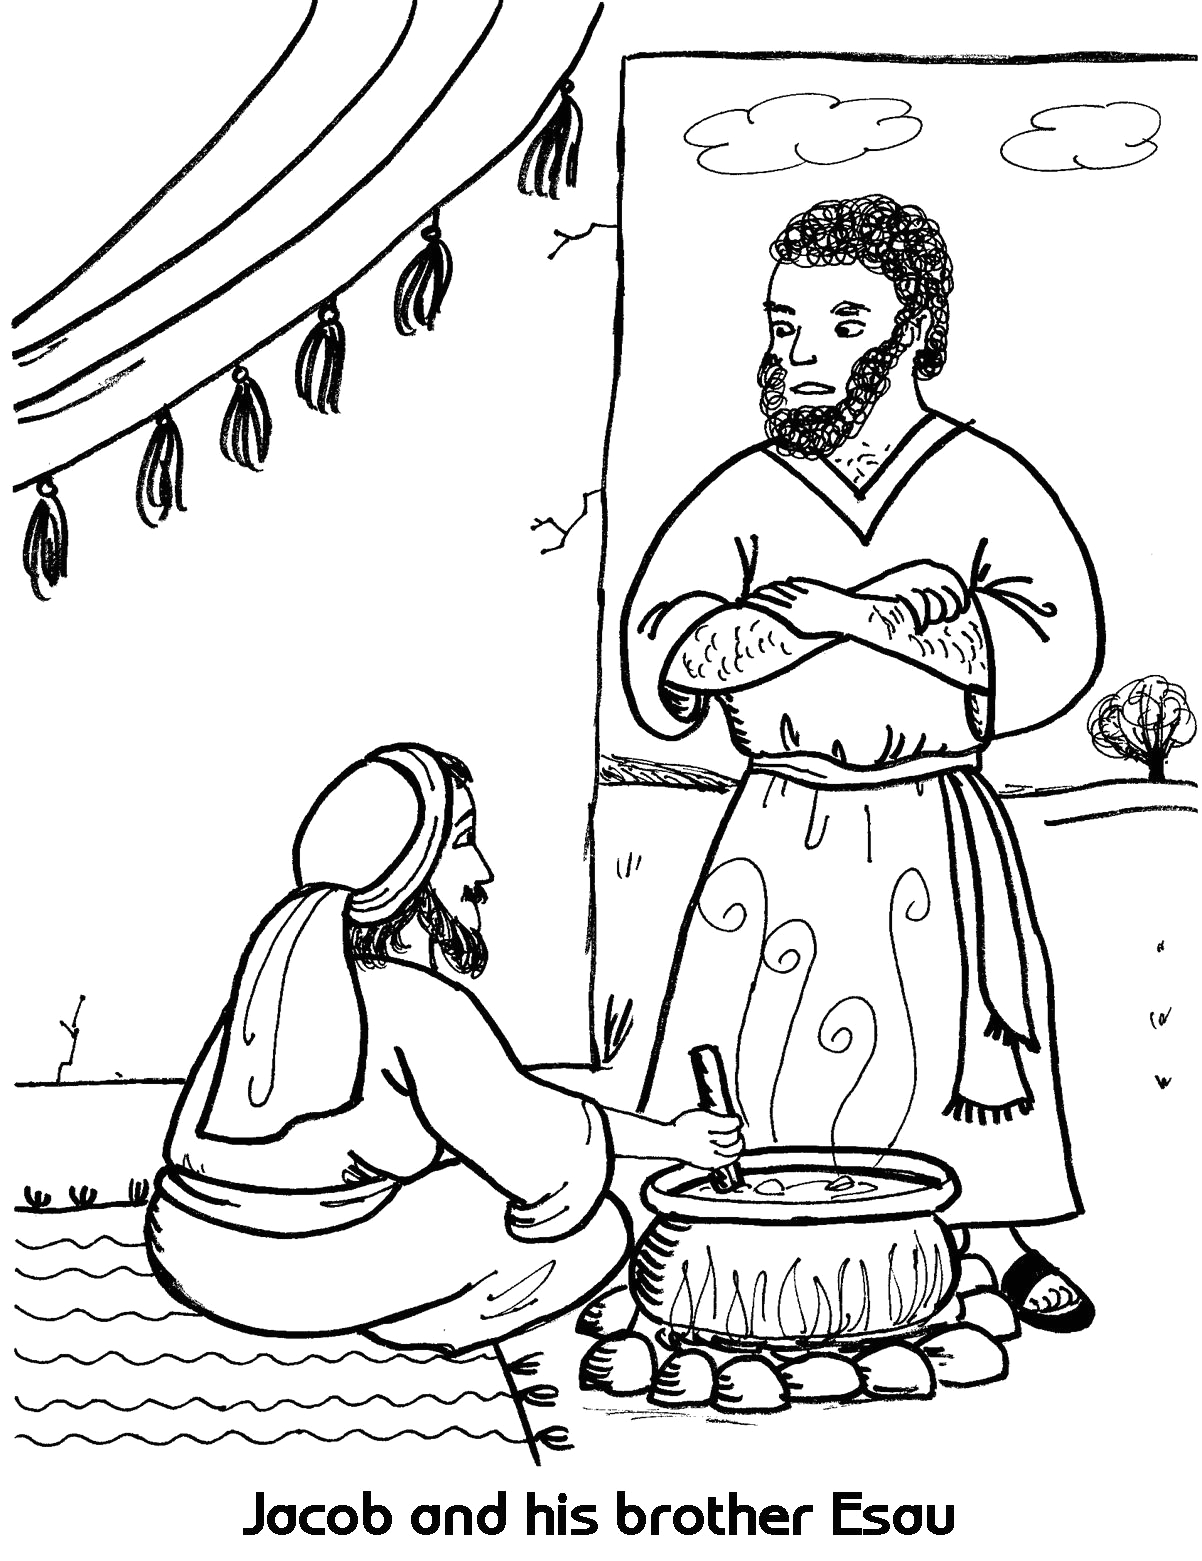 Free Coloring Pages Of Jacob and Esau Jacob Meets Esau Coloring Pages Coloring Home